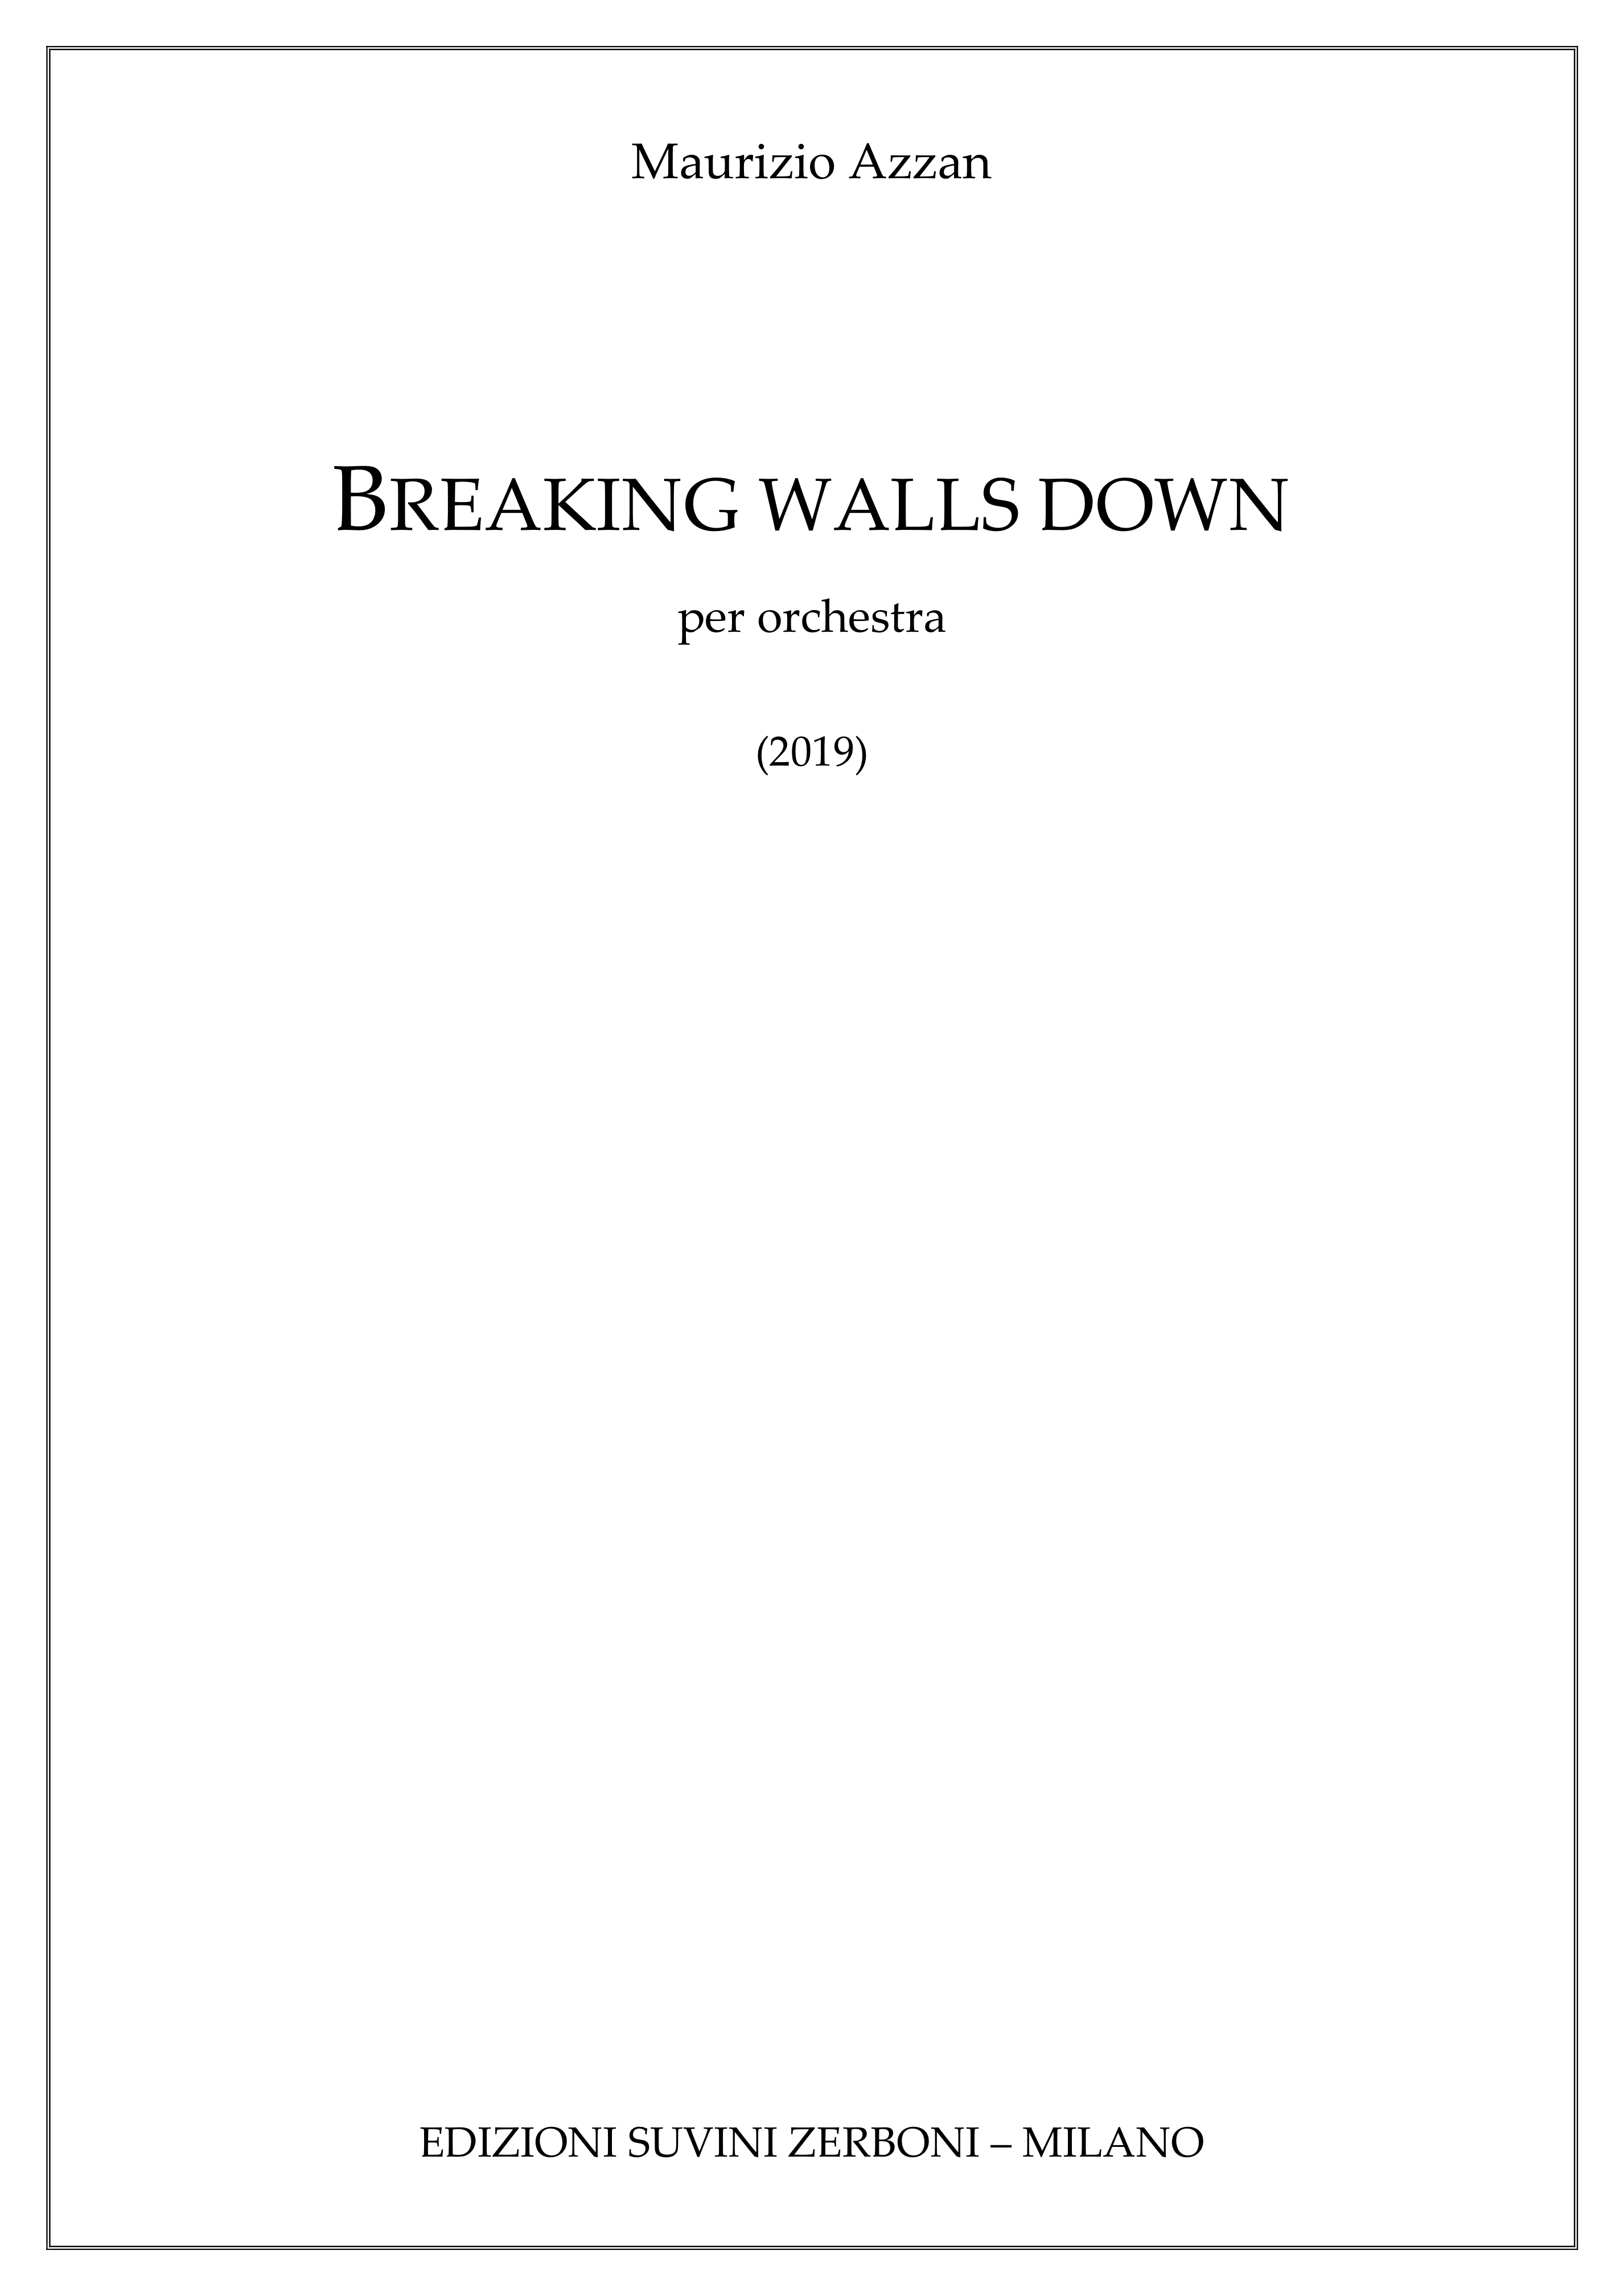 Breaking walls down_Azzan 1